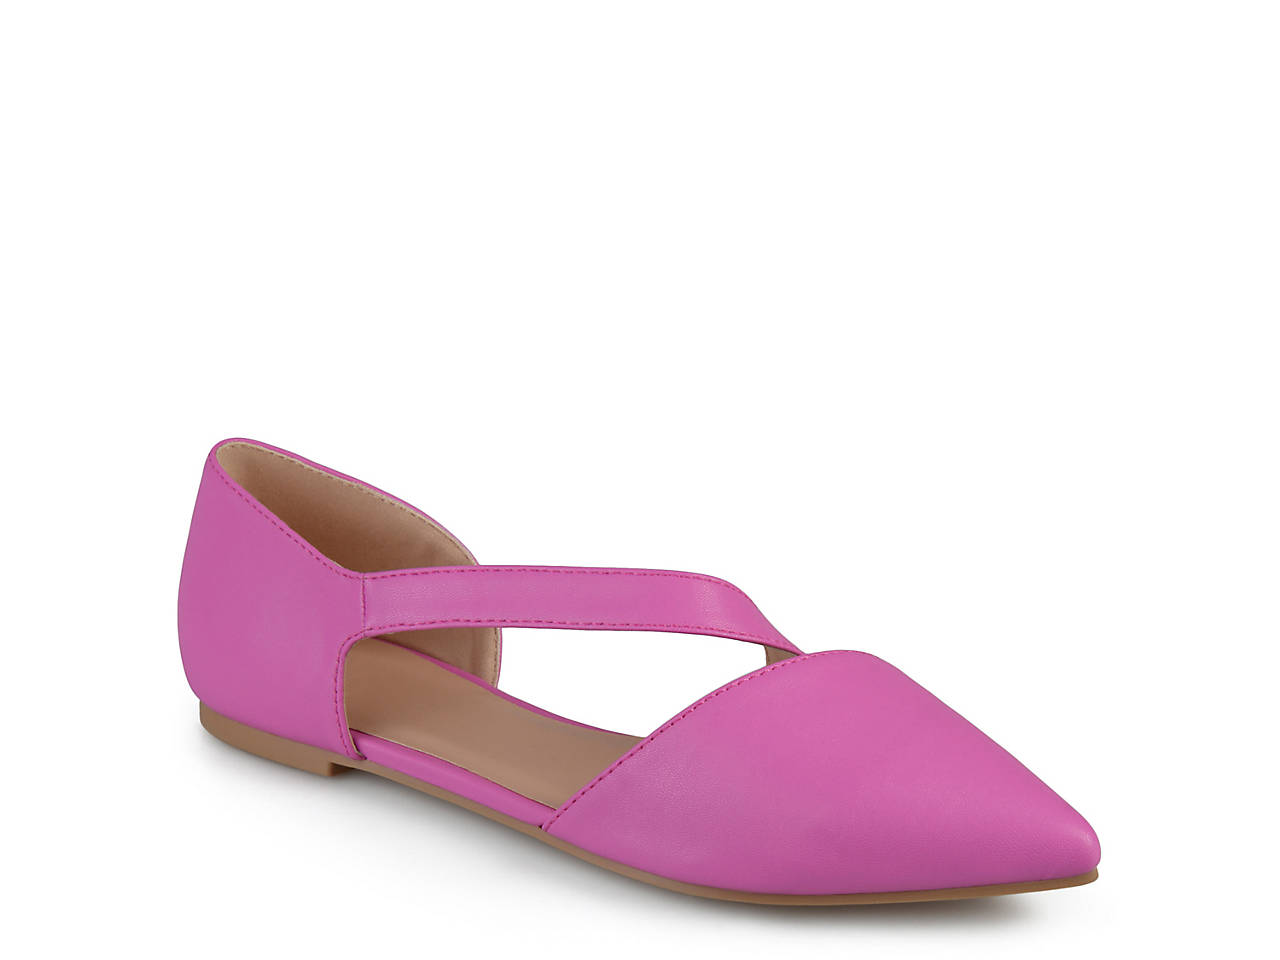 Journee Collection Landry ... Women's Pointed Flats ihWeZt4Yh4